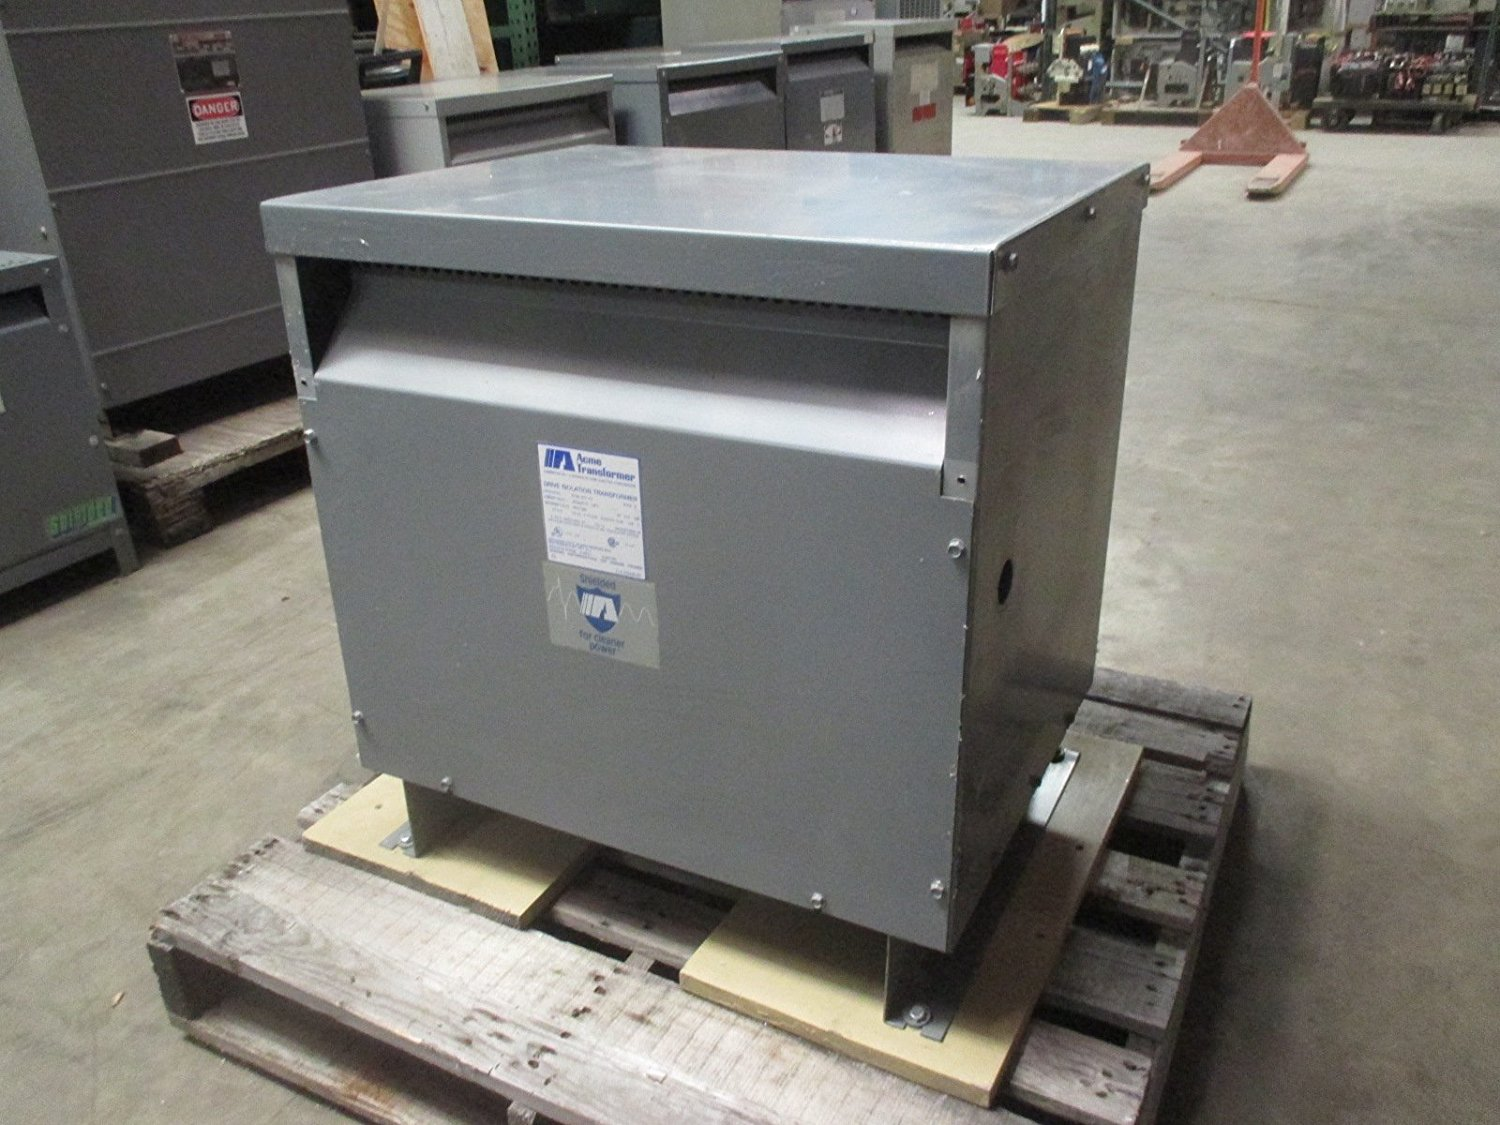 Hubbell Acme Electric DTGB0274S Drive Isolation Transformer, 3 Phase, 60 Hz, 27 kVA, 460 Delta Primary Volts, 460Y/266 Secondary Volts, Steel